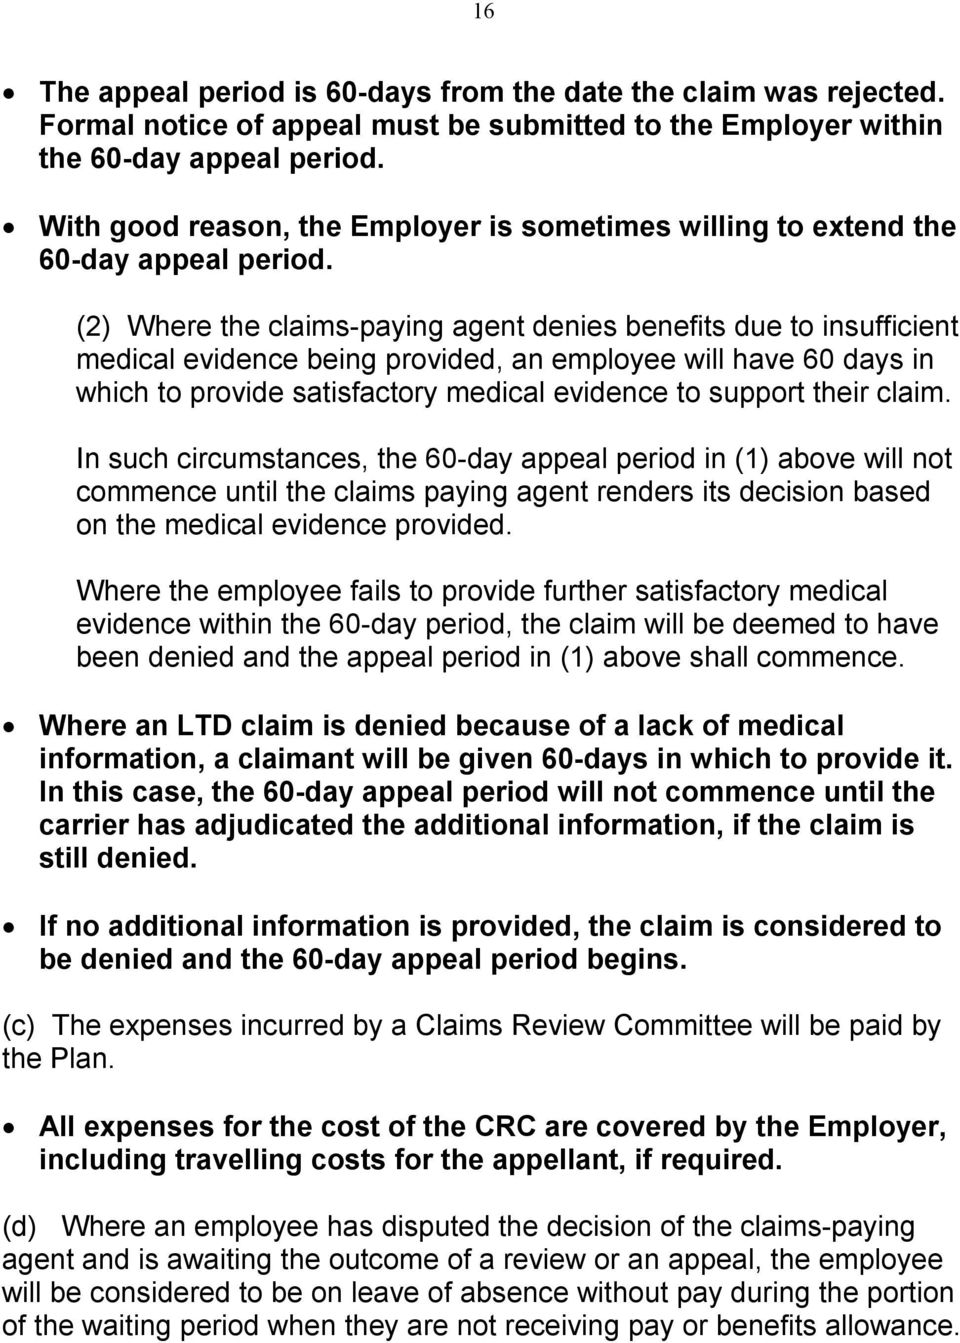 (2) Where the claims-paying agent denies benefits due to insufficient medical evidence being provided, an employee will have 60 days in which to provide satisfactory medical evidence to support their